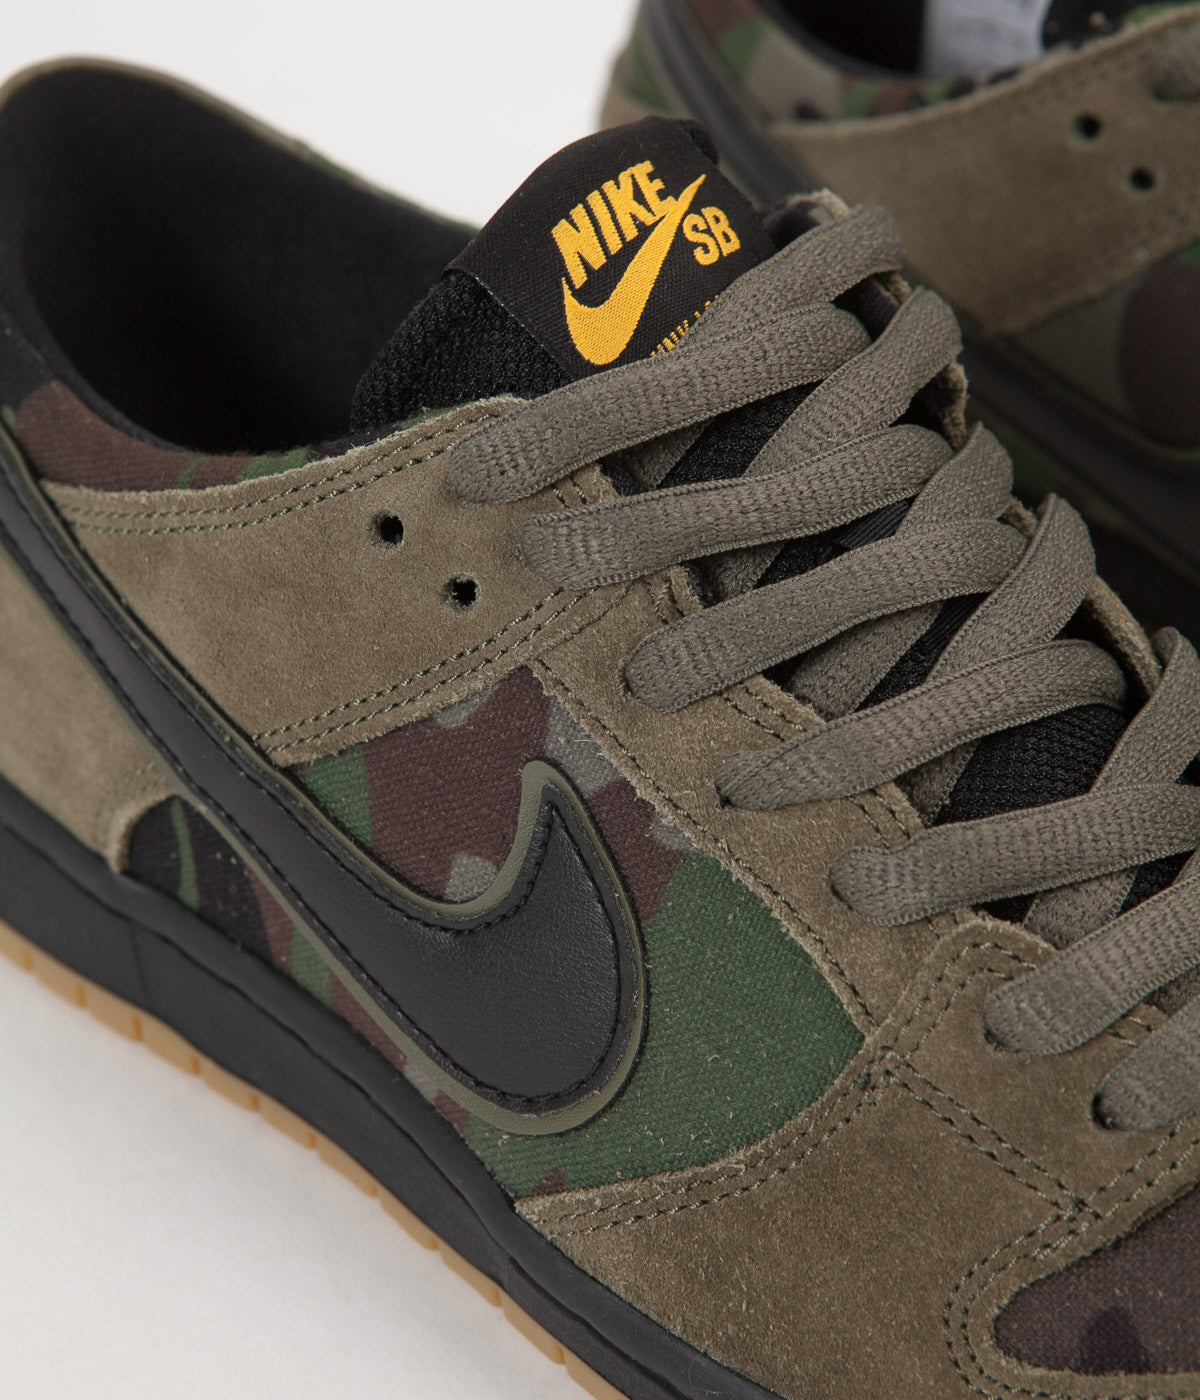 competitive price 5a103 96139 ... Nike SB Dunk Low Pro Shoes - Medium Olive  Black - Gum Light Brown ...